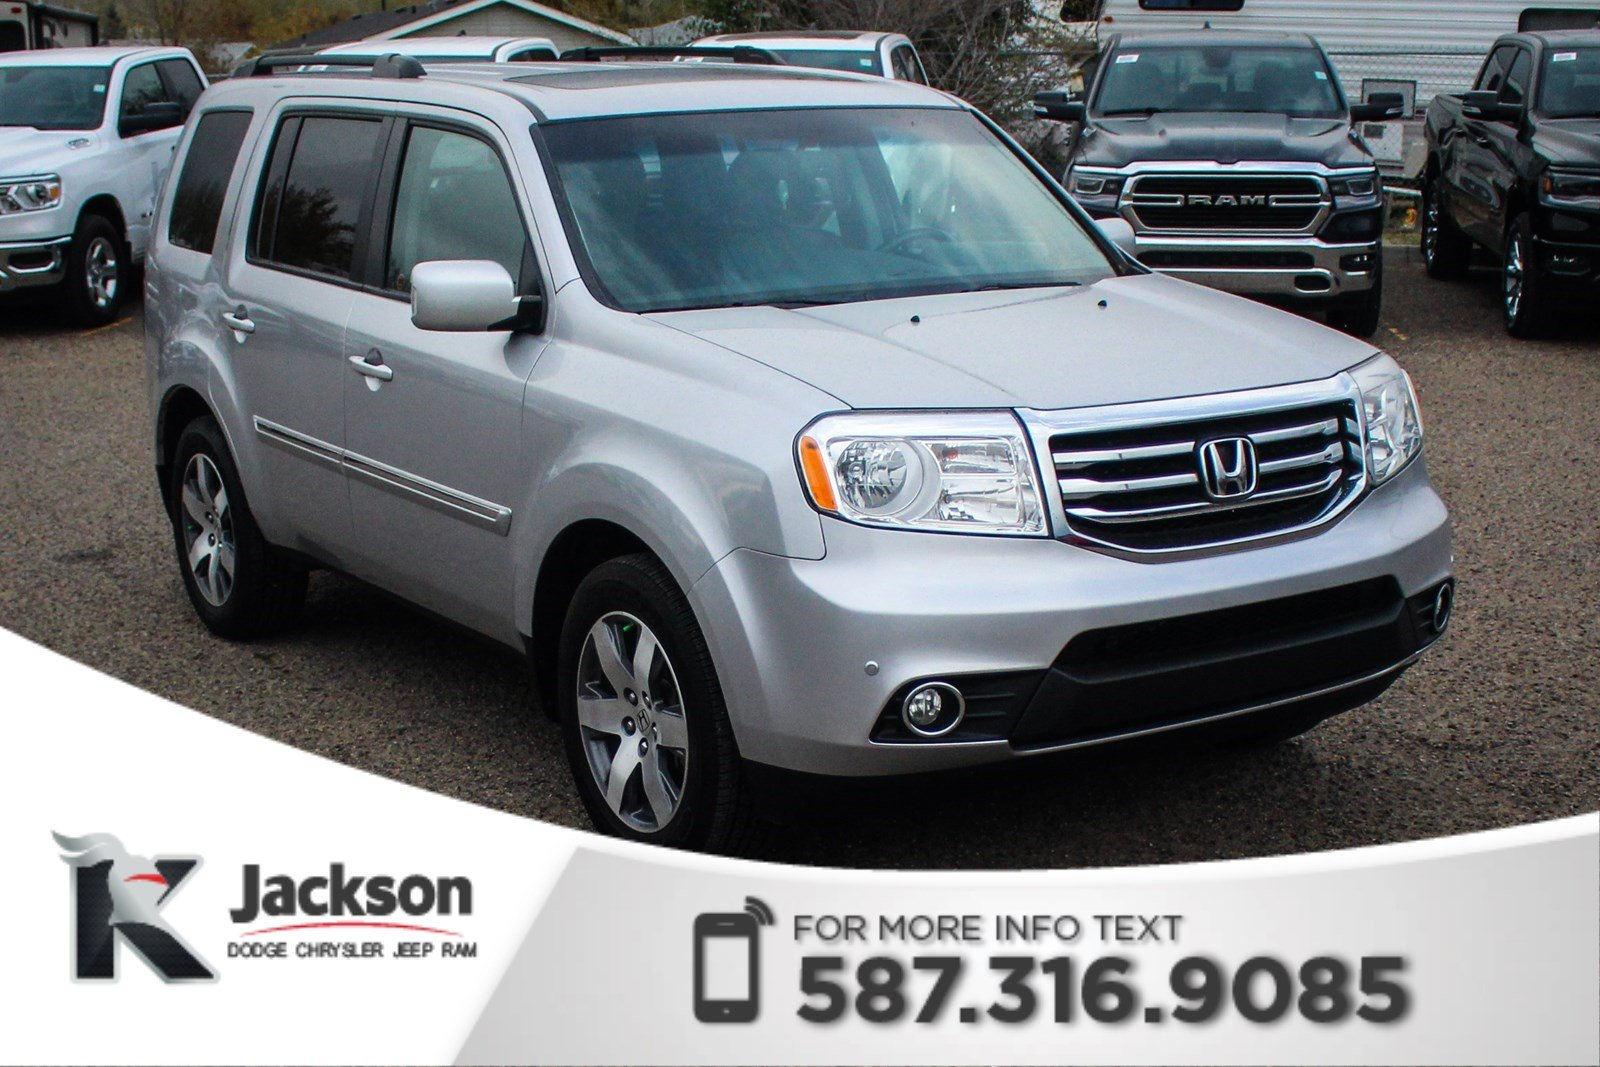 Pre Owned 2013 Honda Pilot Touring   3rd Row Seating, DVD Player, Power  Sunroof